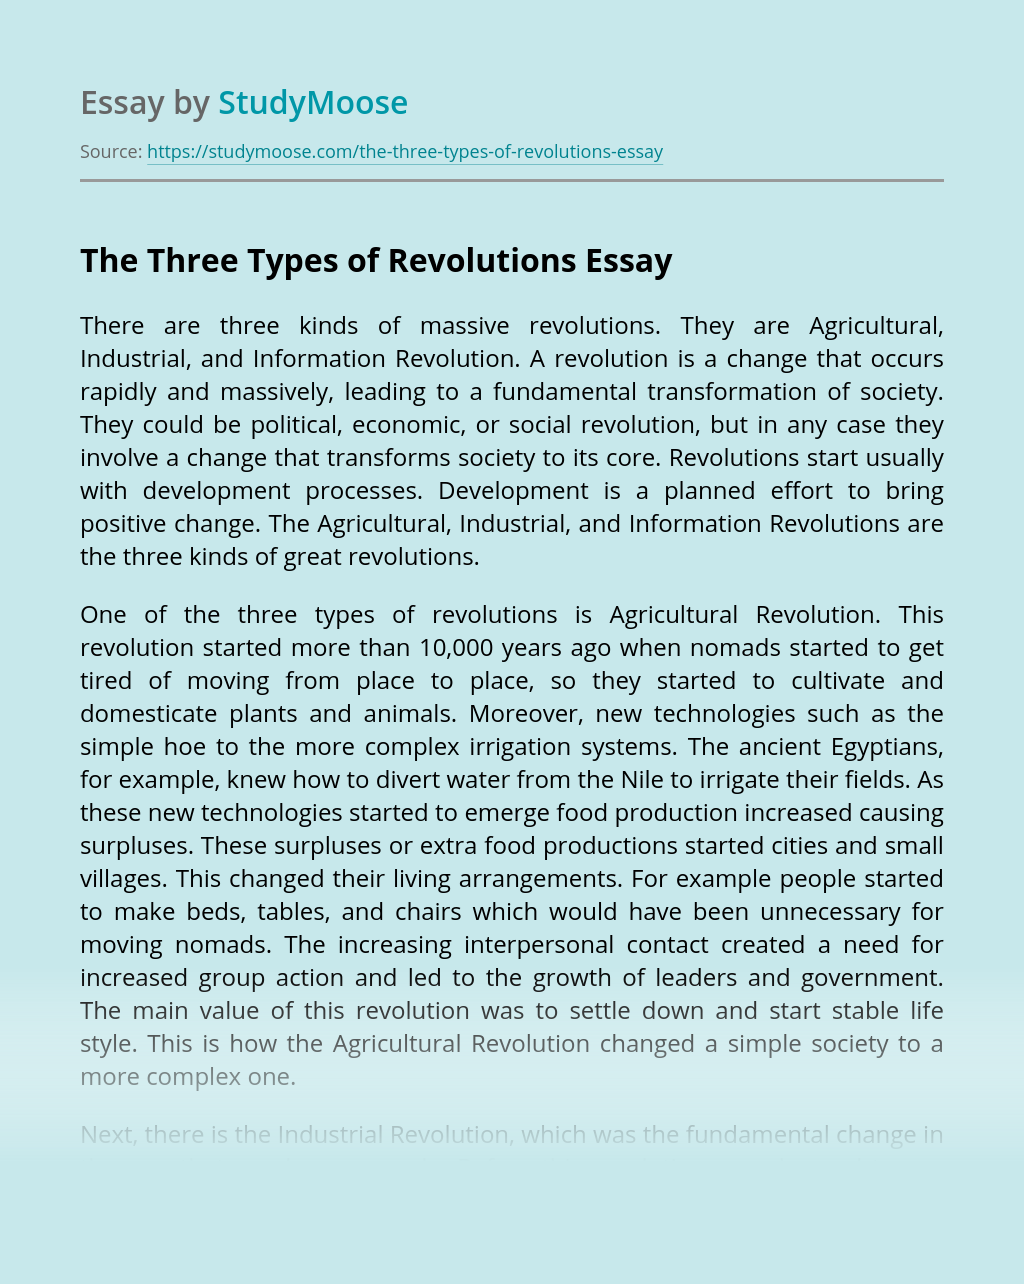 The Three Types of Revolutions